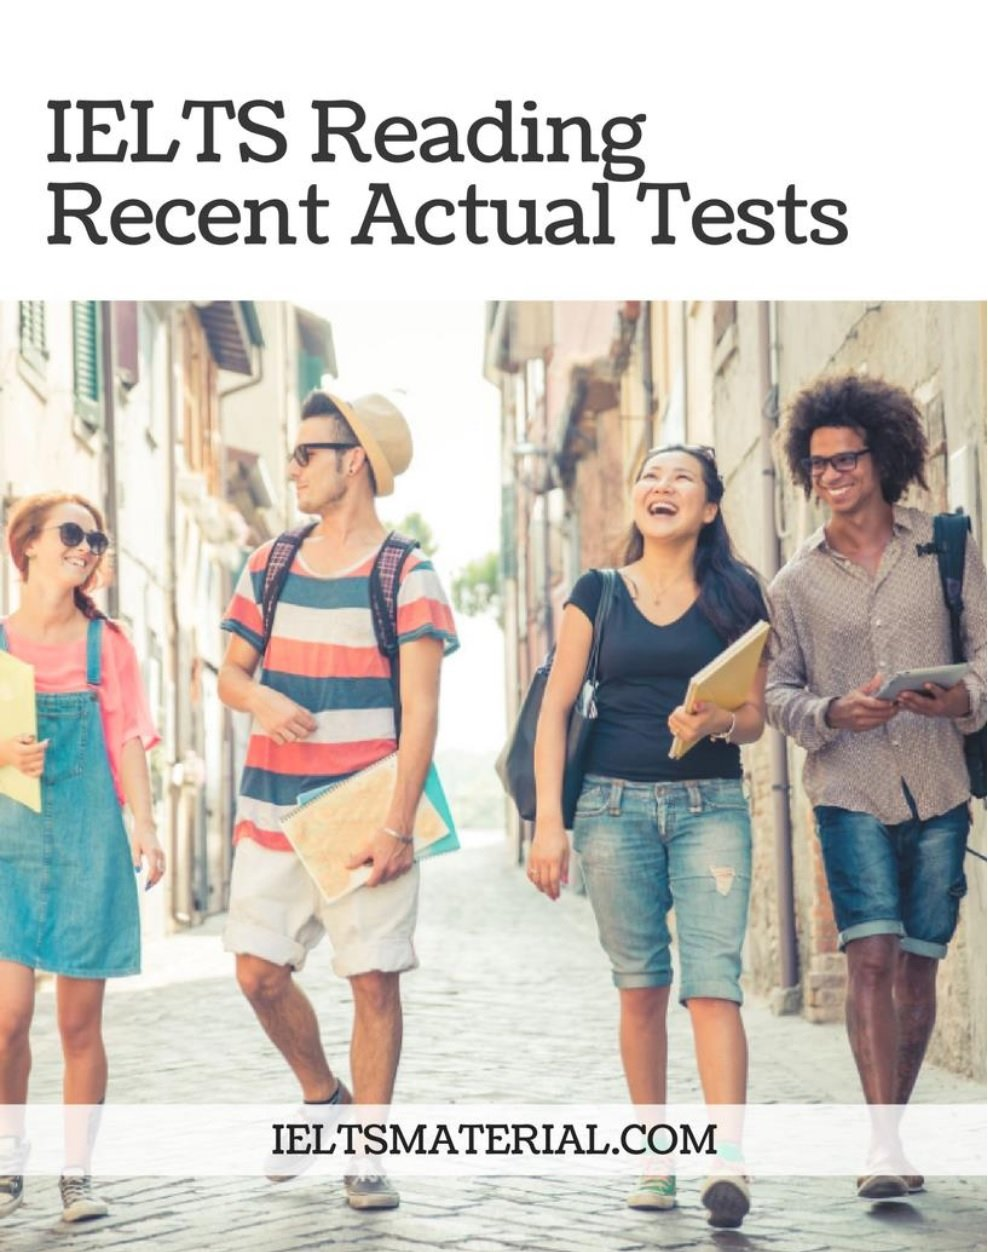 IELTS READING RECENT ACTUAL TESTS WITH ANSWERS (IELTS